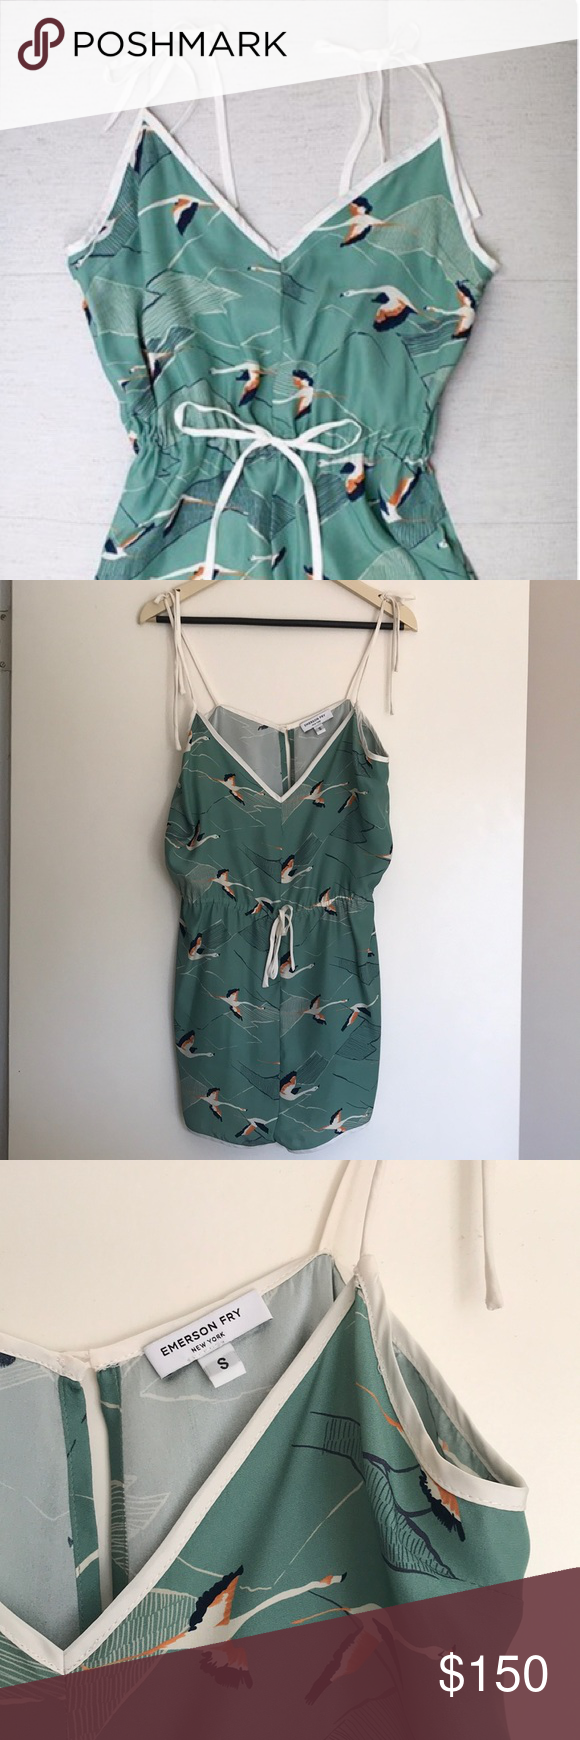 Emerson Fry Camiknicker silk flamingo romper EUC Emerson Fry silk flamingo romper with silk bag in matching pattern. Never worn just hoarded.  Tie string at waist and button in back. Tie string at shoulder top Emerson Fry Intimates & Sleepwear Pajamas #emersonfry Emerson Fry Camiknicker silk flamingo romper EUC Emerson Fry silk flamingo romper with silk bag in matching pattern. Never worn just hoarded.  Tie string at waist and button in back. Tie string at shoulder top Emerson Fry Intimates & Sl #emersonfry